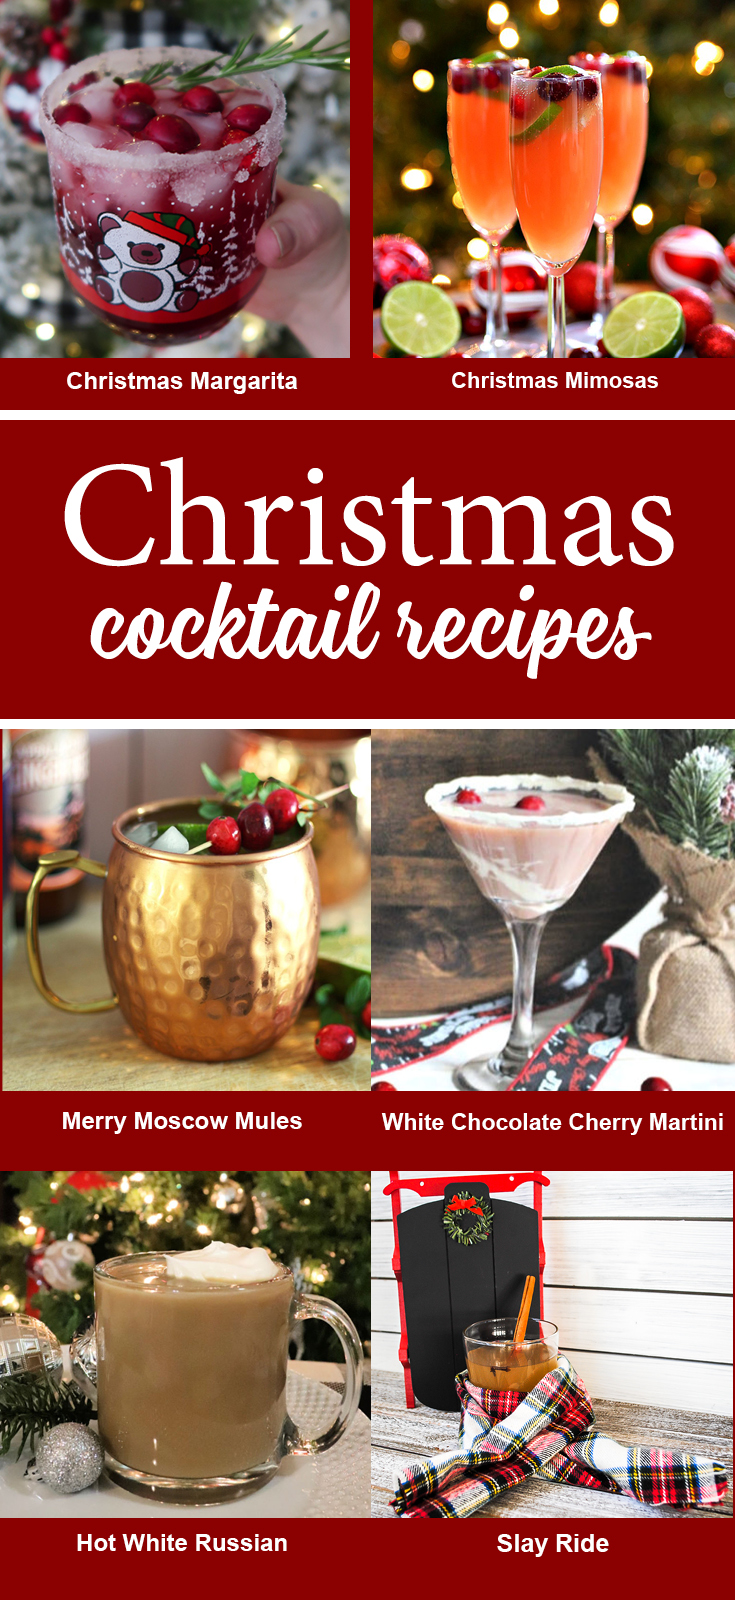 https://www.happygoluckyblog.com/wp-content/uploads/2018/12/6-Christmas-Cocktails1.jpg